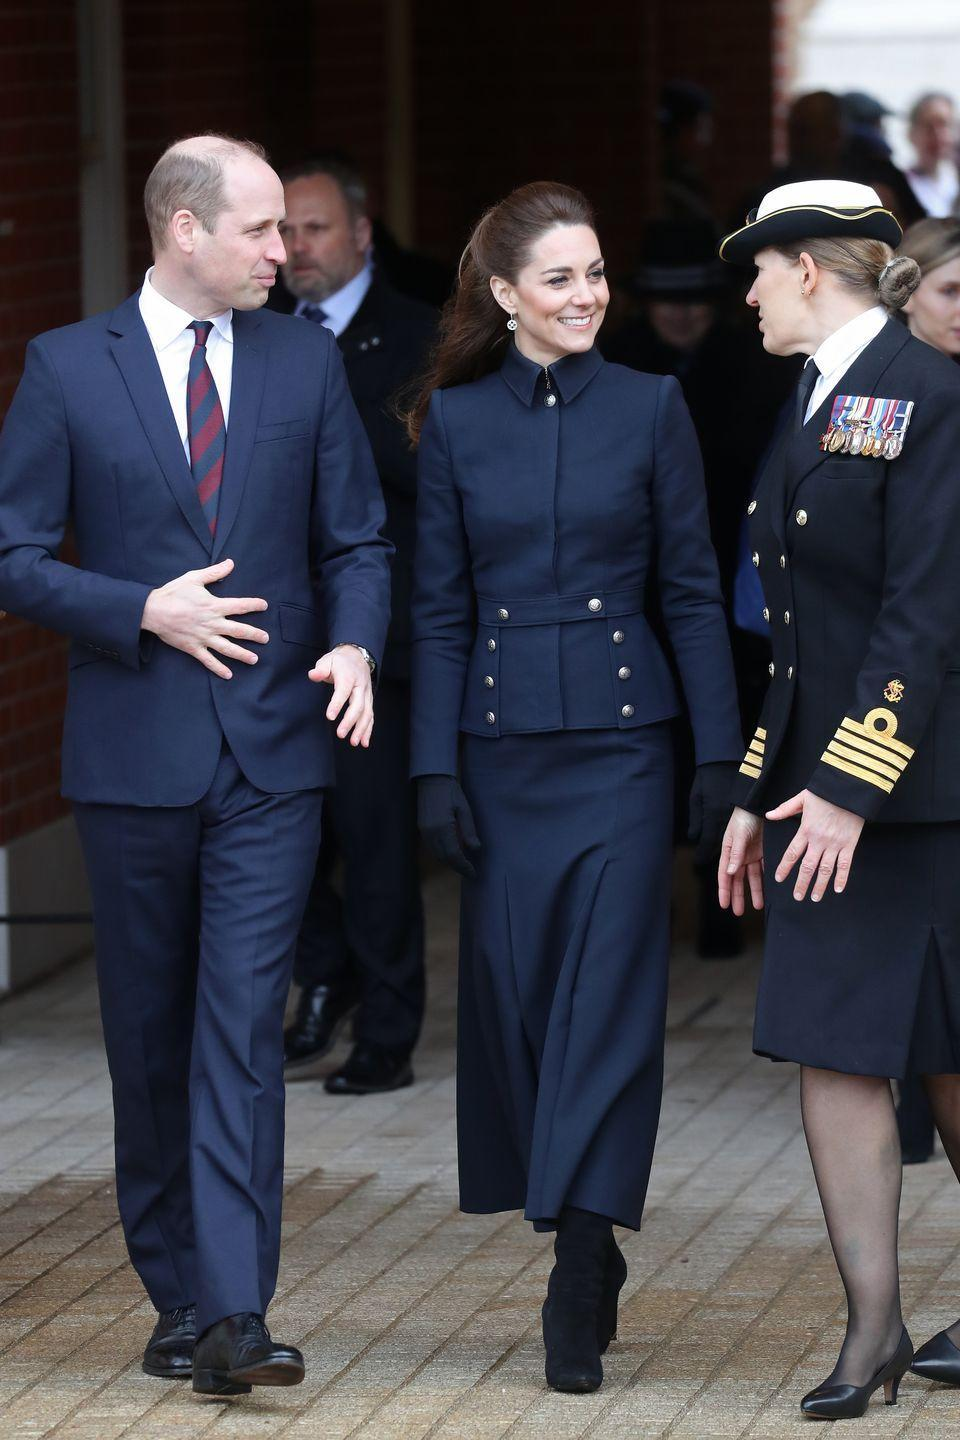 """<p>Kate and Prince William accompanied Prince Charles and Camilla on <a href=""""https://www.townandcountrymag.com/society/tradition/a30859150/kate-middleton-prince-william-charles-camilla-rare-appearance-military-rehab-leicester/"""" rel=""""nofollow noopener"""" target=""""_blank"""" data-ylk=""""slk:a visit to Leicestershire"""" class=""""link rapid-noclick-resp"""">a visit to Leicestershire</a>, where they toured a rehabilitation center for members of the armed forces. The Duchess chose a military-inspired, navy blue <a href=""""https://www.townandcountrymag.com/society/tradition/a30859254/kate-middleton-mcqueen-military-coat-leicestershire-photos/"""" rel=""""nofollow noopener"""" target=""""_blank"""" data-ylk=""""slk:Alexander McQueen jacket and skirt"""" class=""""link rapid-noclick-resp"""">Alexander McQueen jacket and skirt</a> for the occasion. She completed the look with black heeled boots, black gloves, and drop earrings. </p>"""